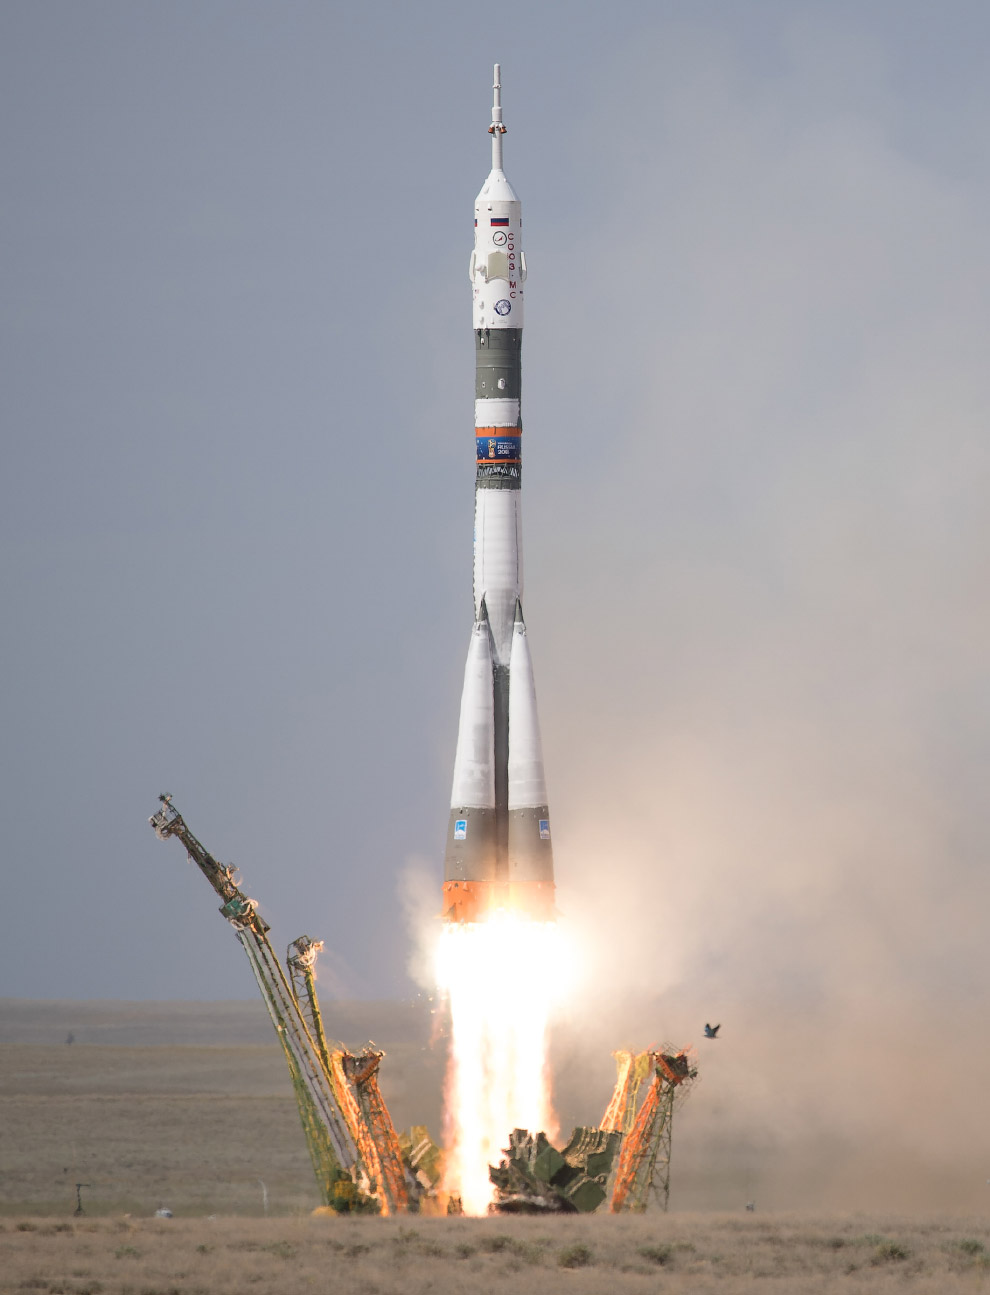 Expedition 56 Launch